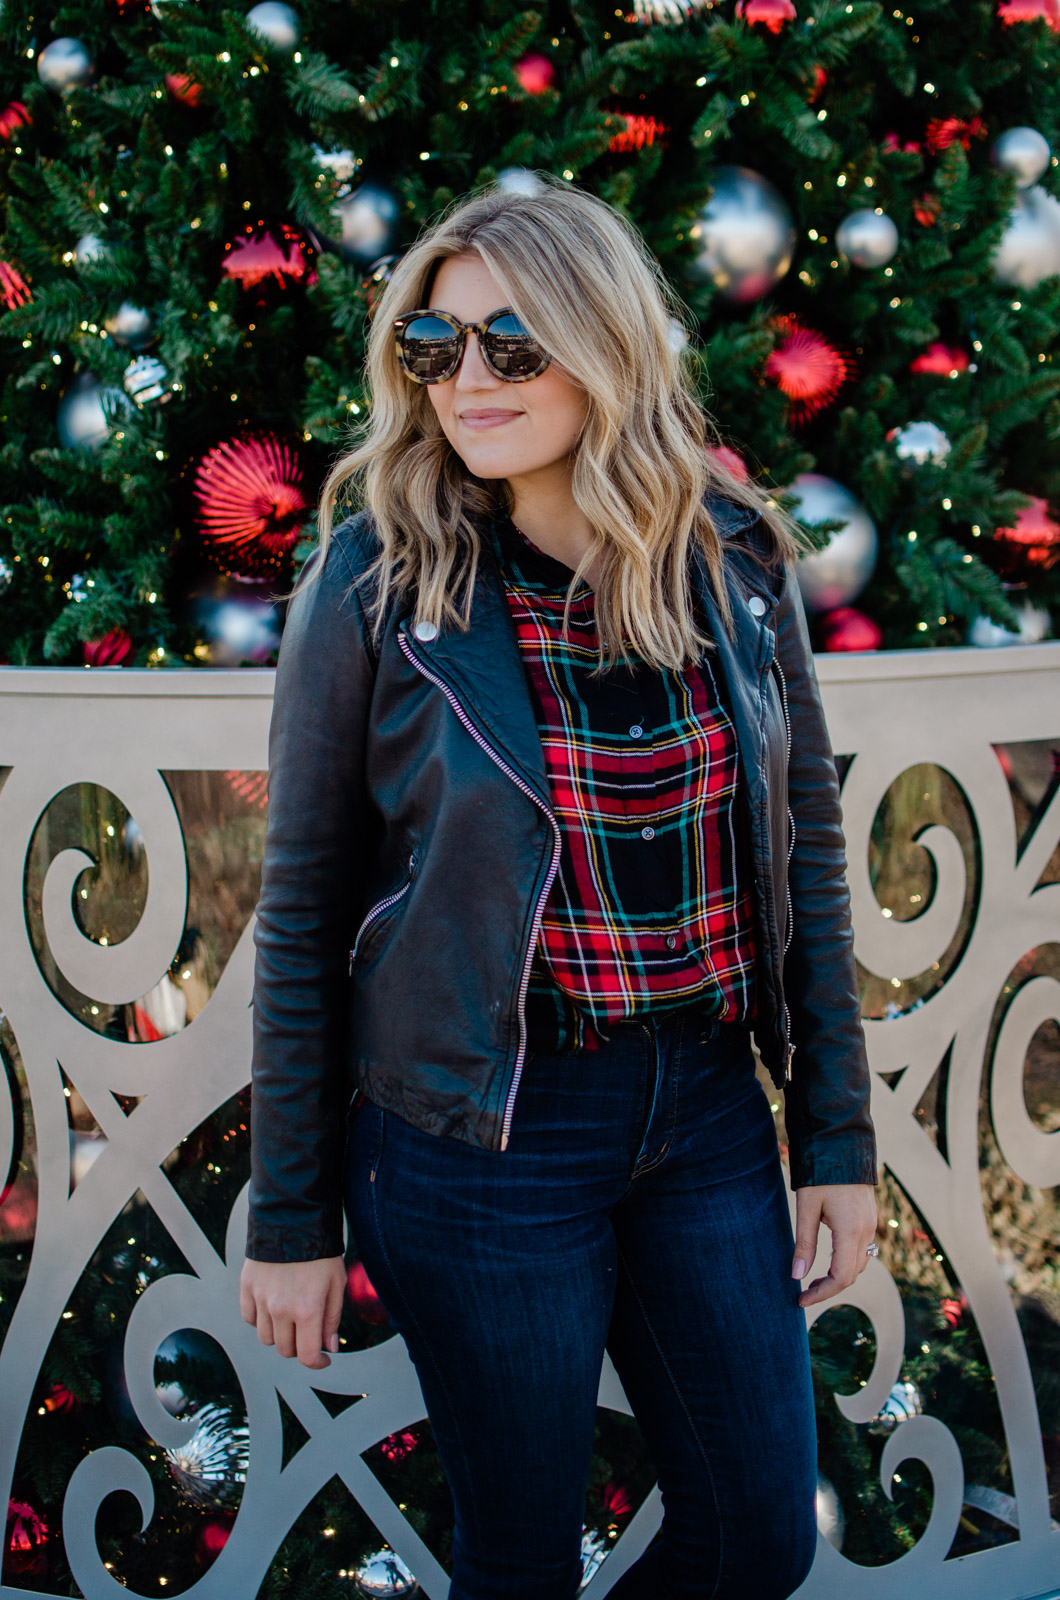 christmas plaid outfit - leather jacket with plaid for the holidays | bylaurenm.com